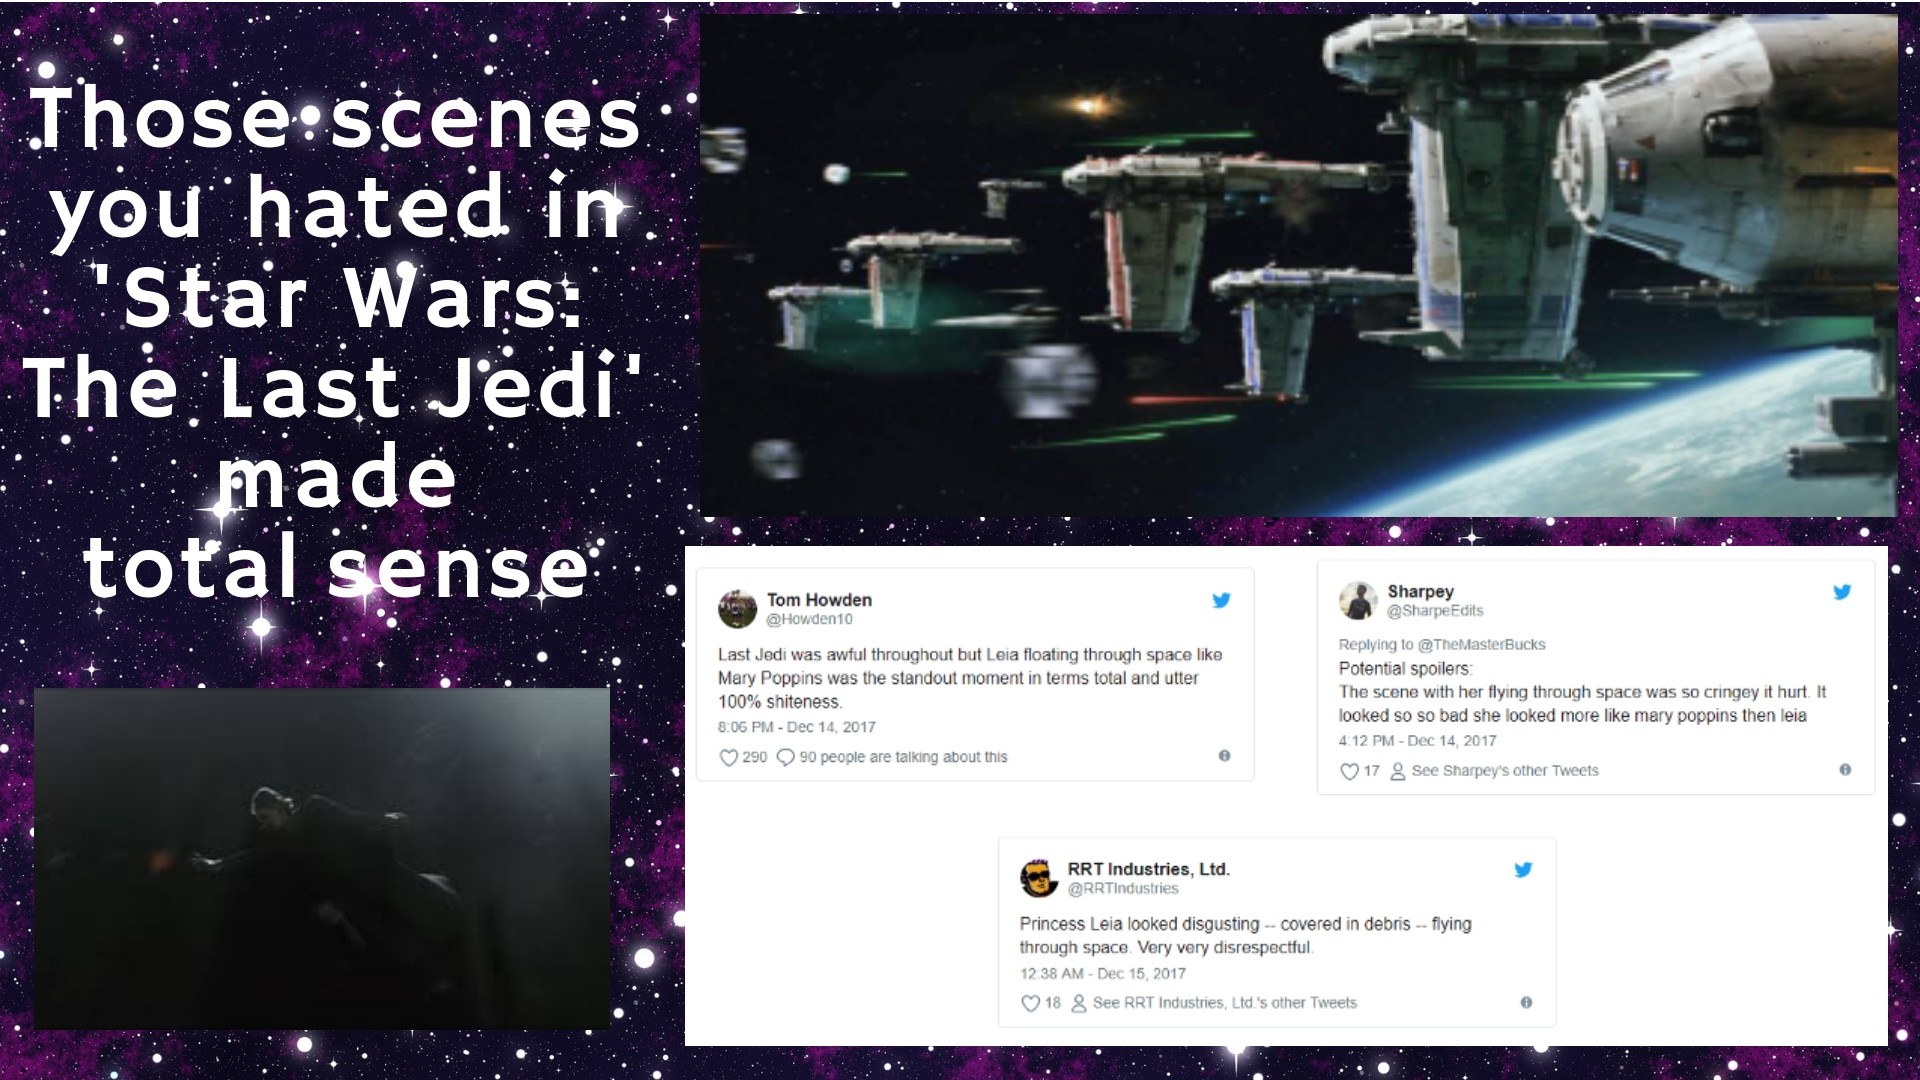 Those Scenes You Hated In Star Wars The Last Jedi Made Total Sense By Robert Lea Medium